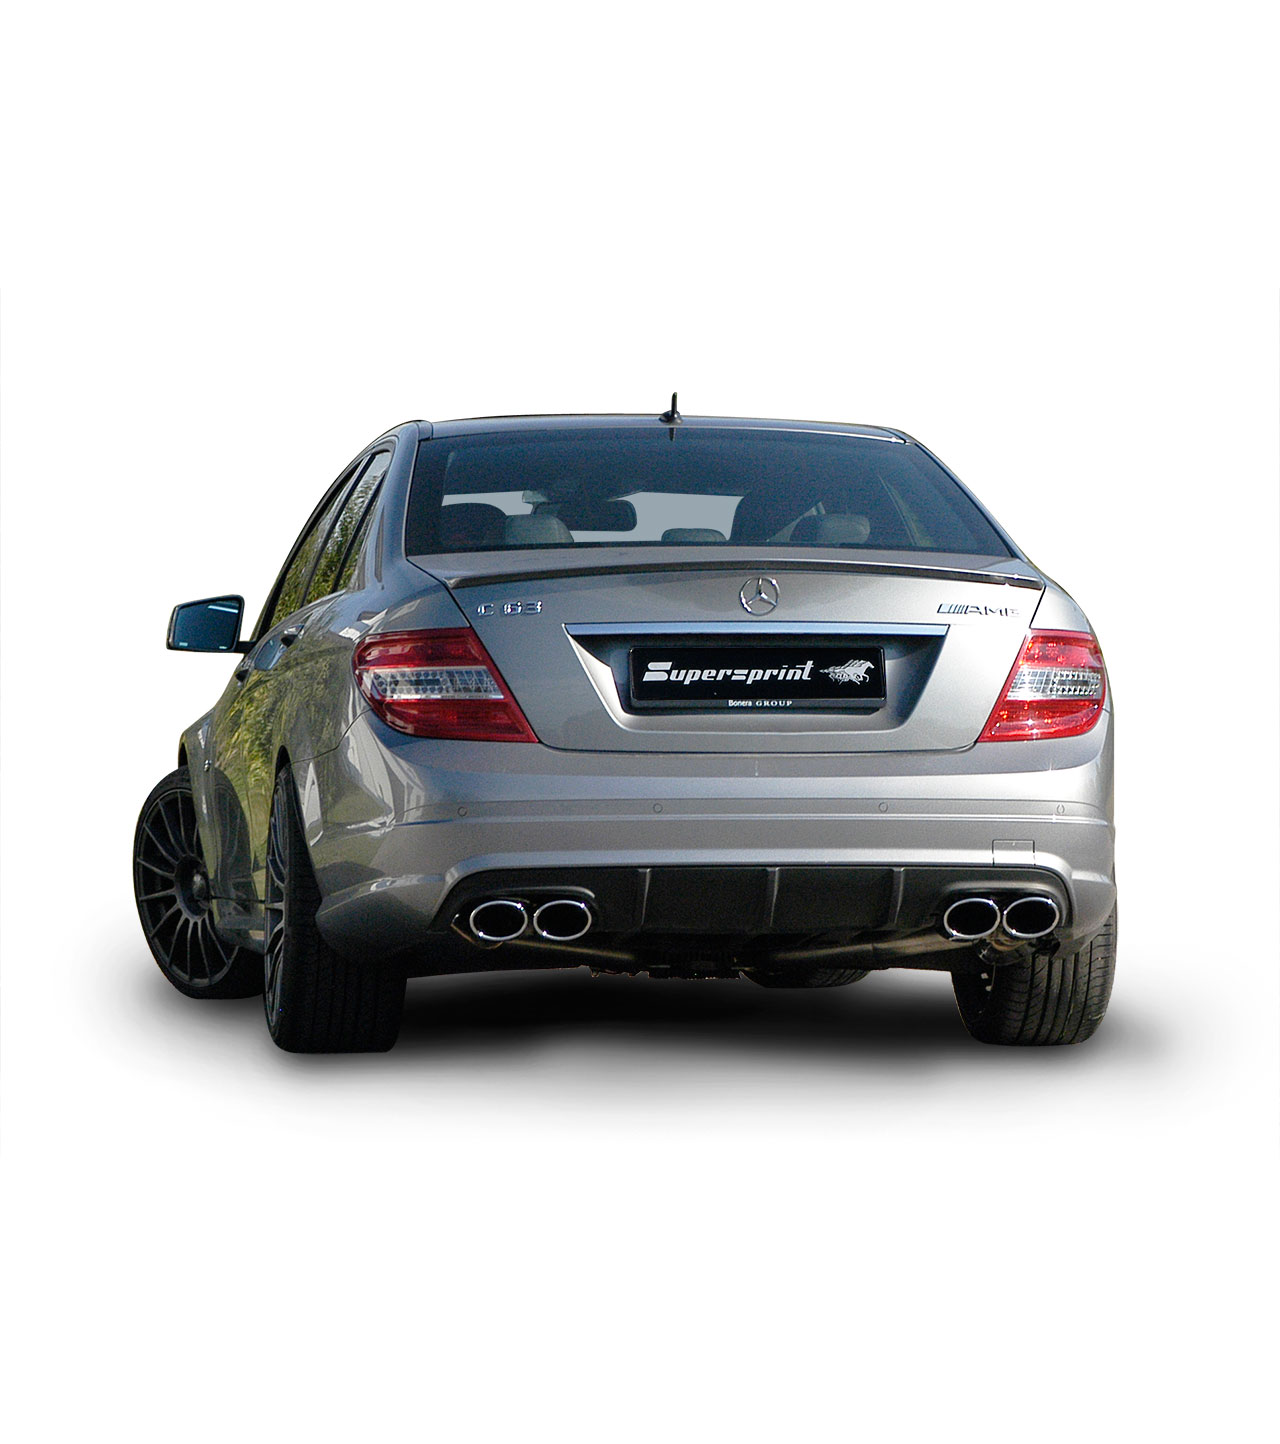 Mercedes AMG - MERCEDES W204 C63 AMG V8 (Sedan + S.W.- 456 Hp) 2007 ->(Cat.-Back)